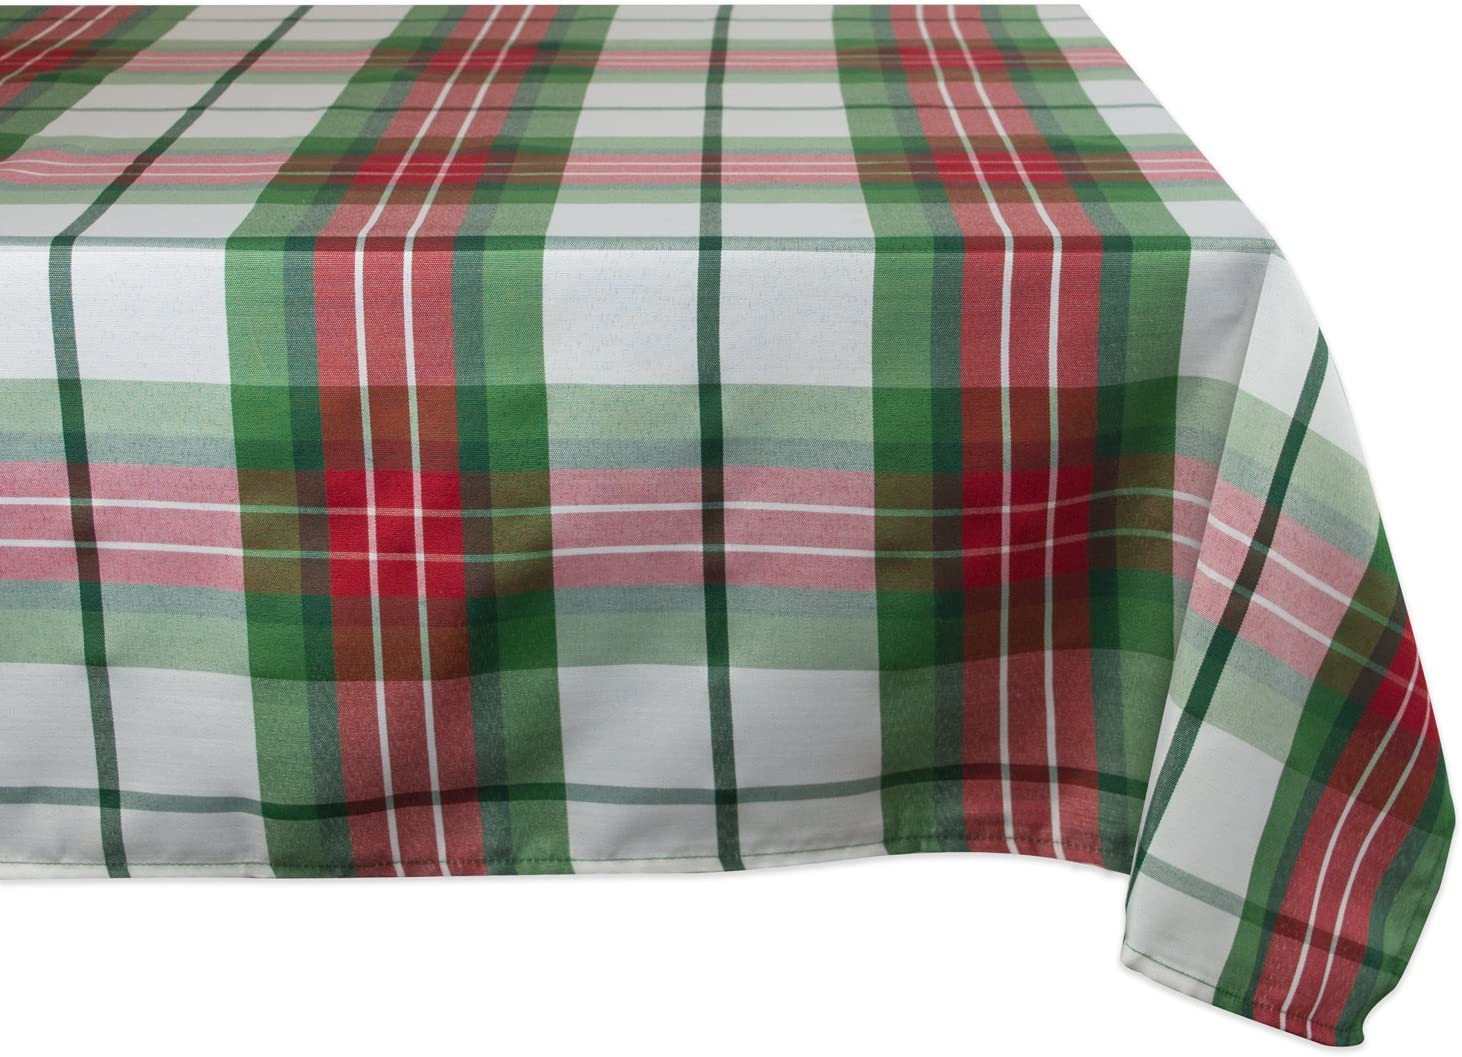 Dii 52x90 Rectangular Polyester Tablecloth Cozy Christmas Plaid Perfect For Dinner Parties Christmas Holidays Or Everyday Use Home Kitchen